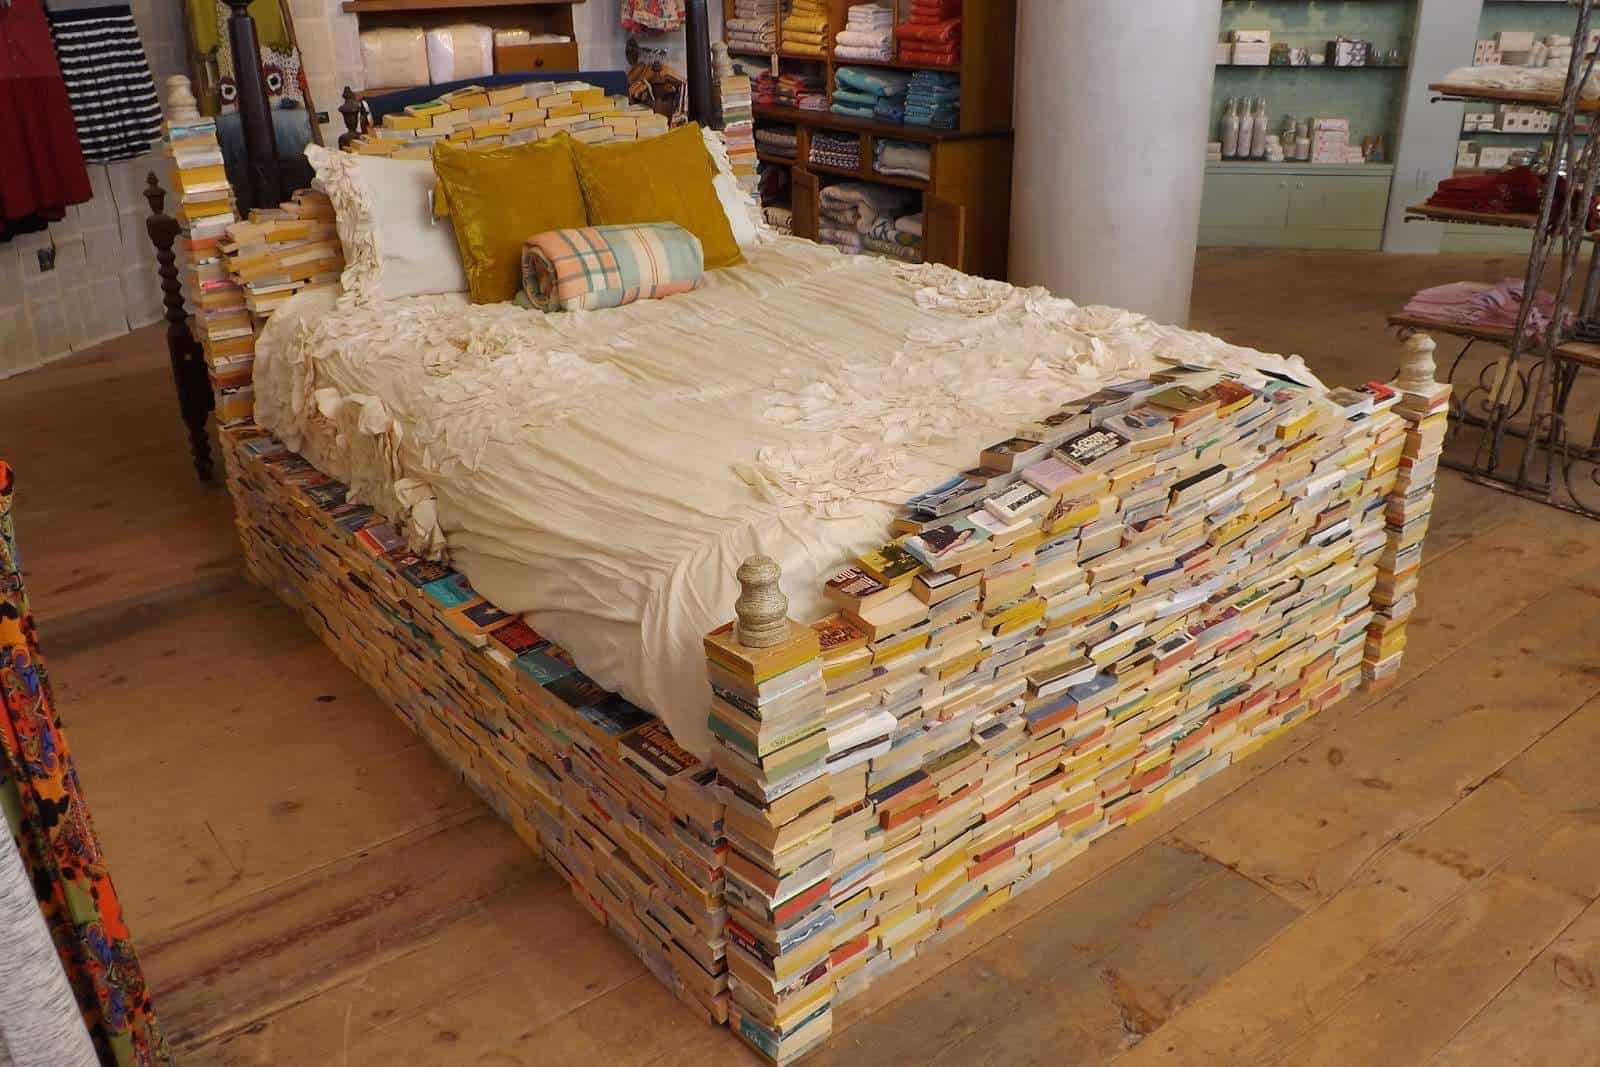 Books Bedframe Recyclart